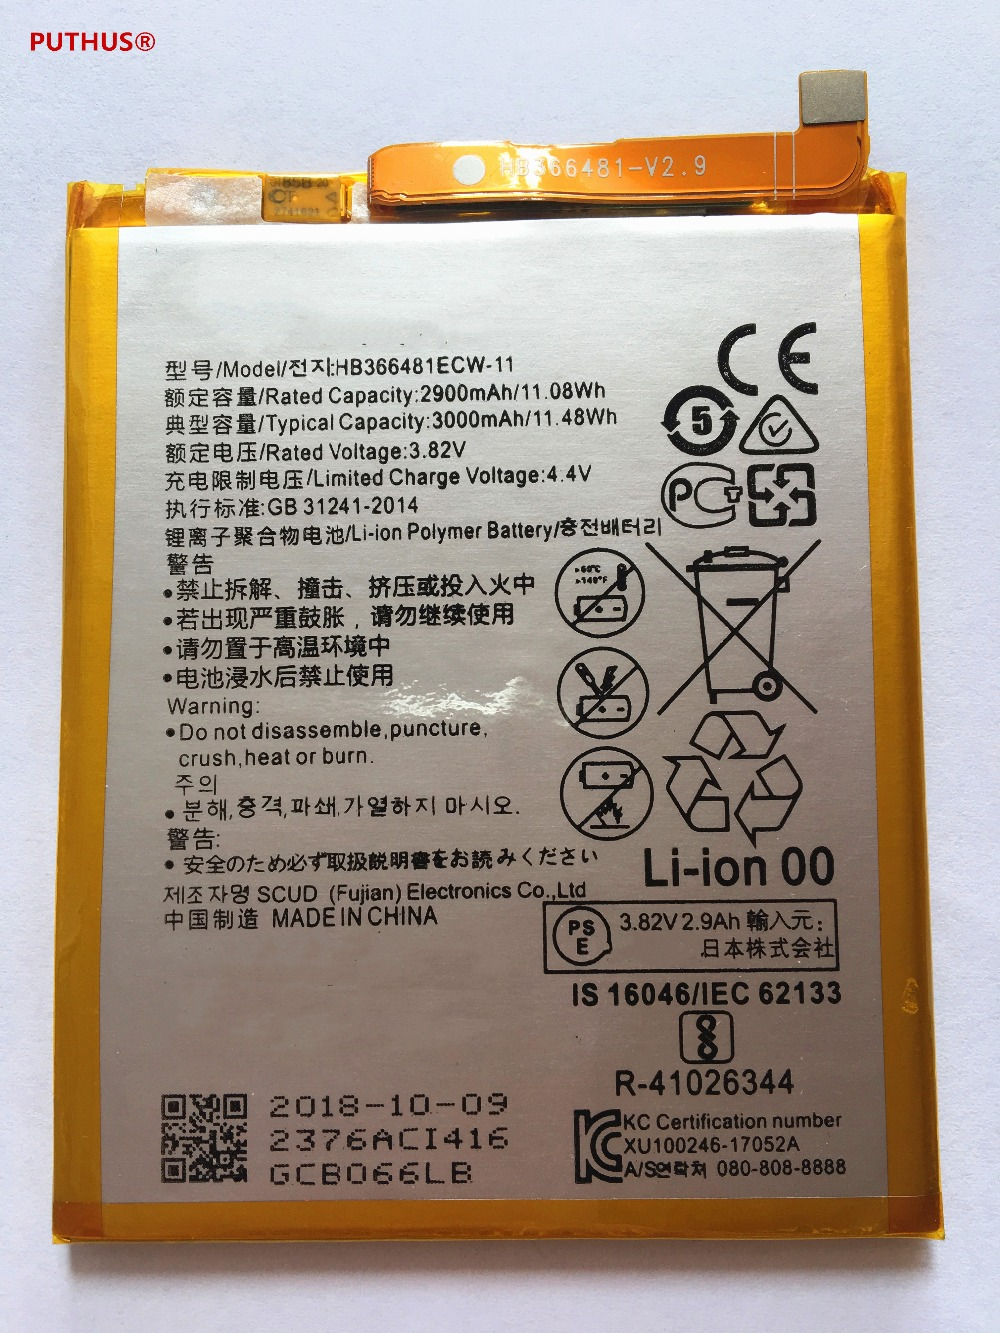 Bright For Hua Wei Replacement Phone Battery Hb366481ecw For Huawei Honor 8 Honor 8 Lite Honor 5c Ascend P9 P9 Lite G9 3000mah Lovely Luster Mobile Phone Parts